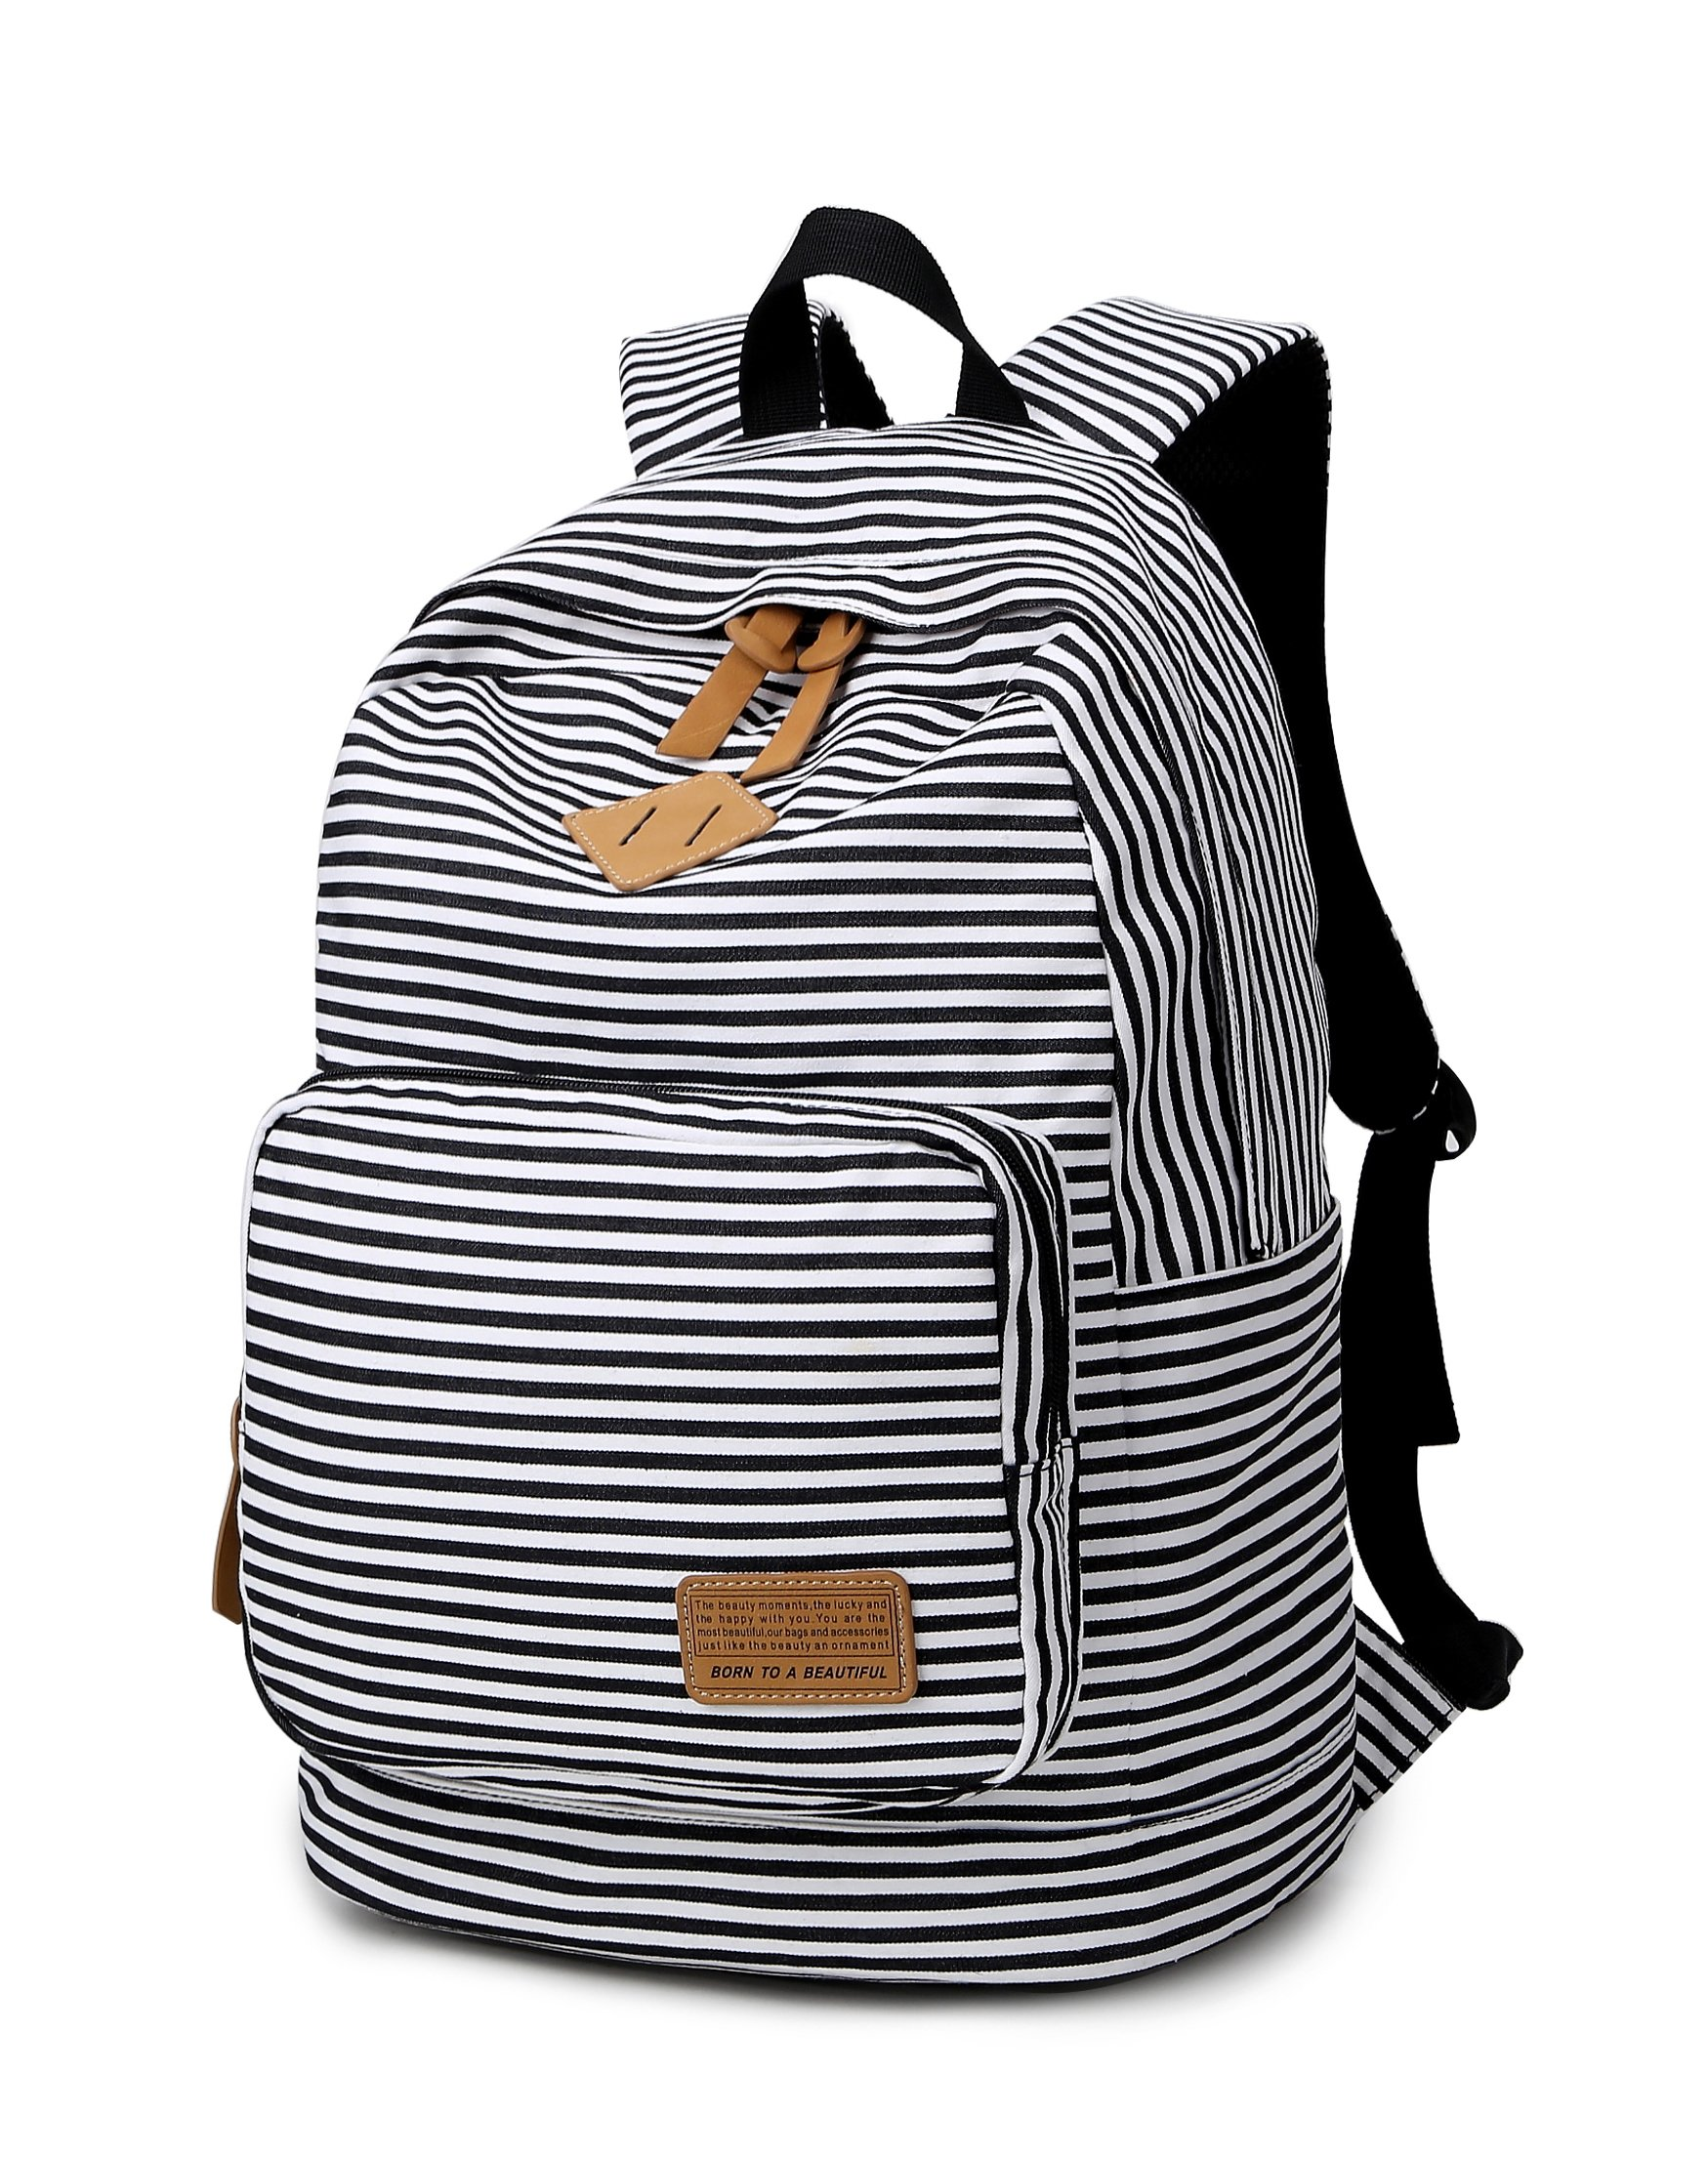 Spalison Striped Canvas Backpack Girls School Bag Women Casual Travel Daypack